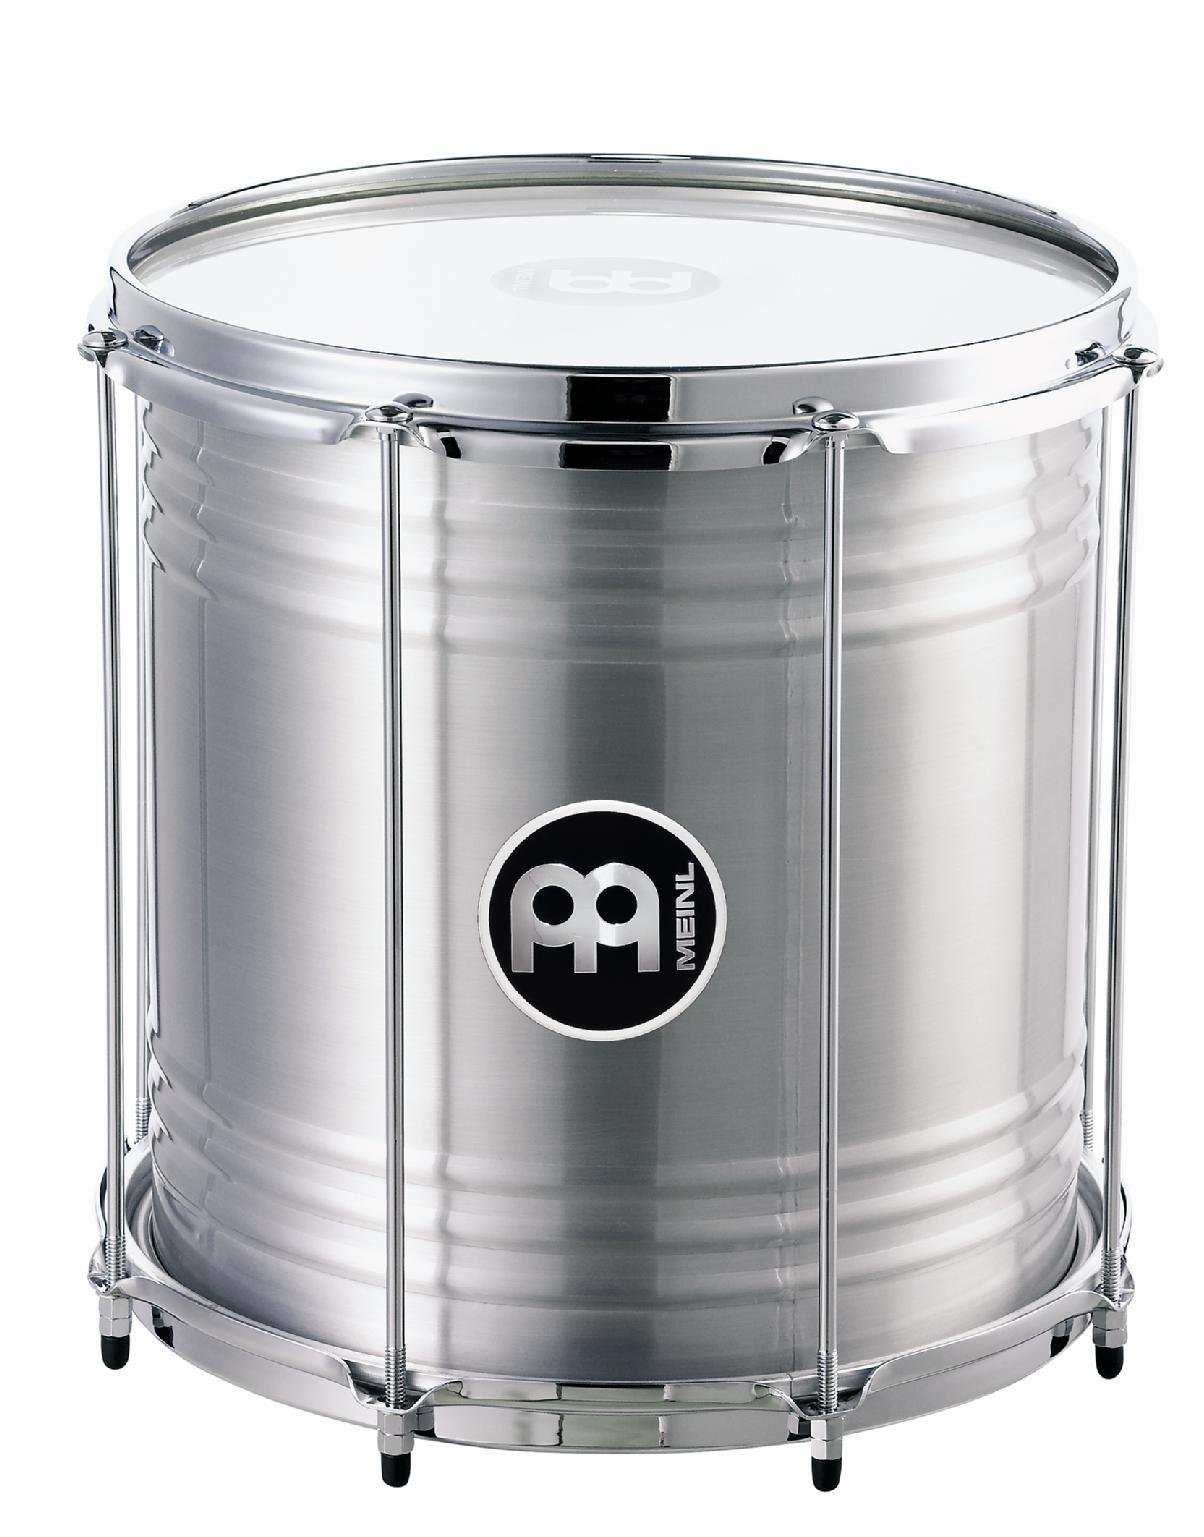 Meinl Percussion Repinique with 12'' Aluminum Shell, Perfect for Samba Music-NOT Made in CHINA-12 Tunable Synthetic Heads, 2-Year Warranty (RE12)